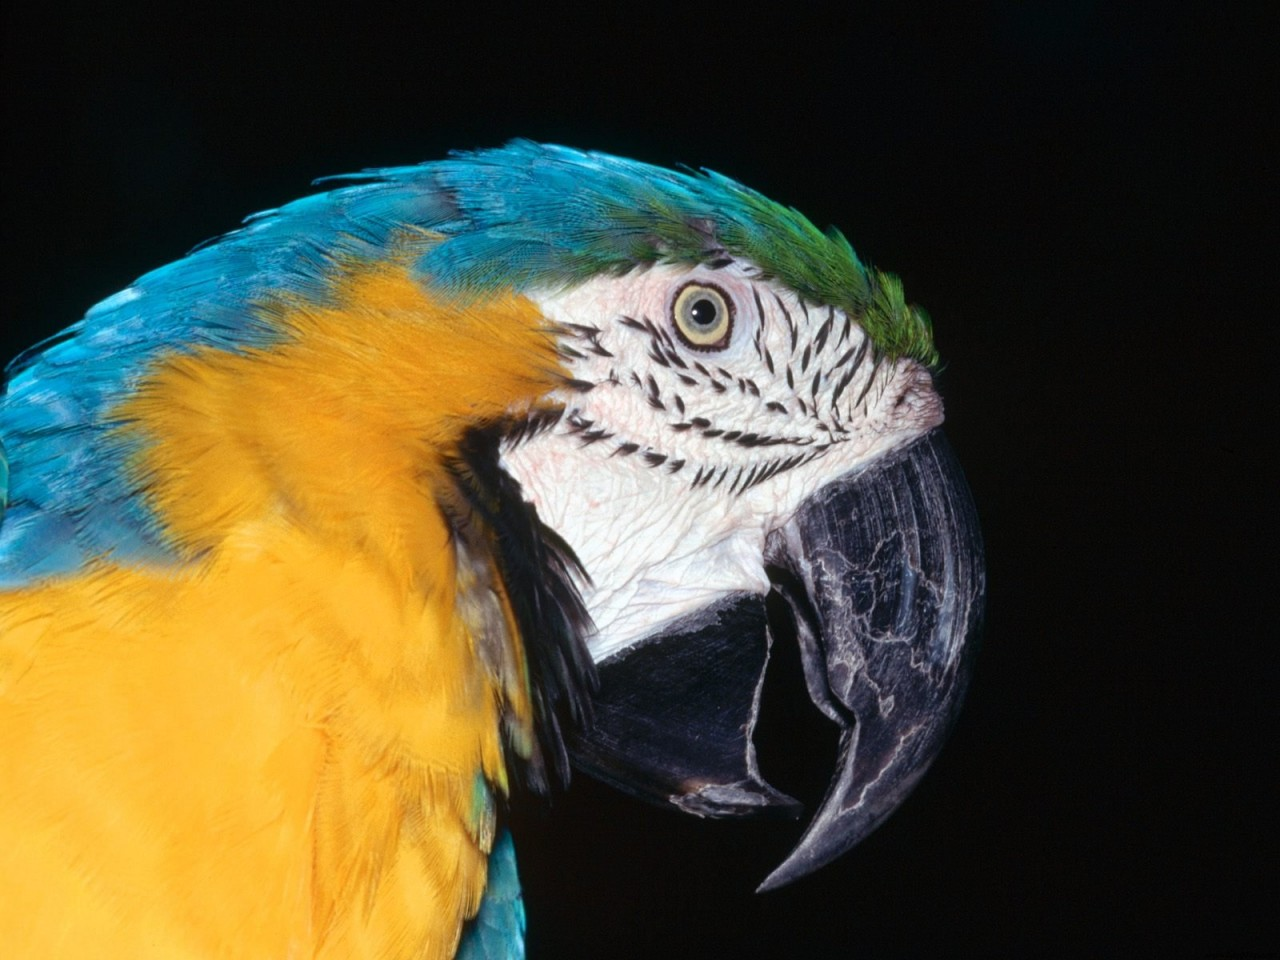 Cute Face Wallpaper Desktop Blue And Yellow Macaw Wallpapers Hd Wallpapers Id 4874